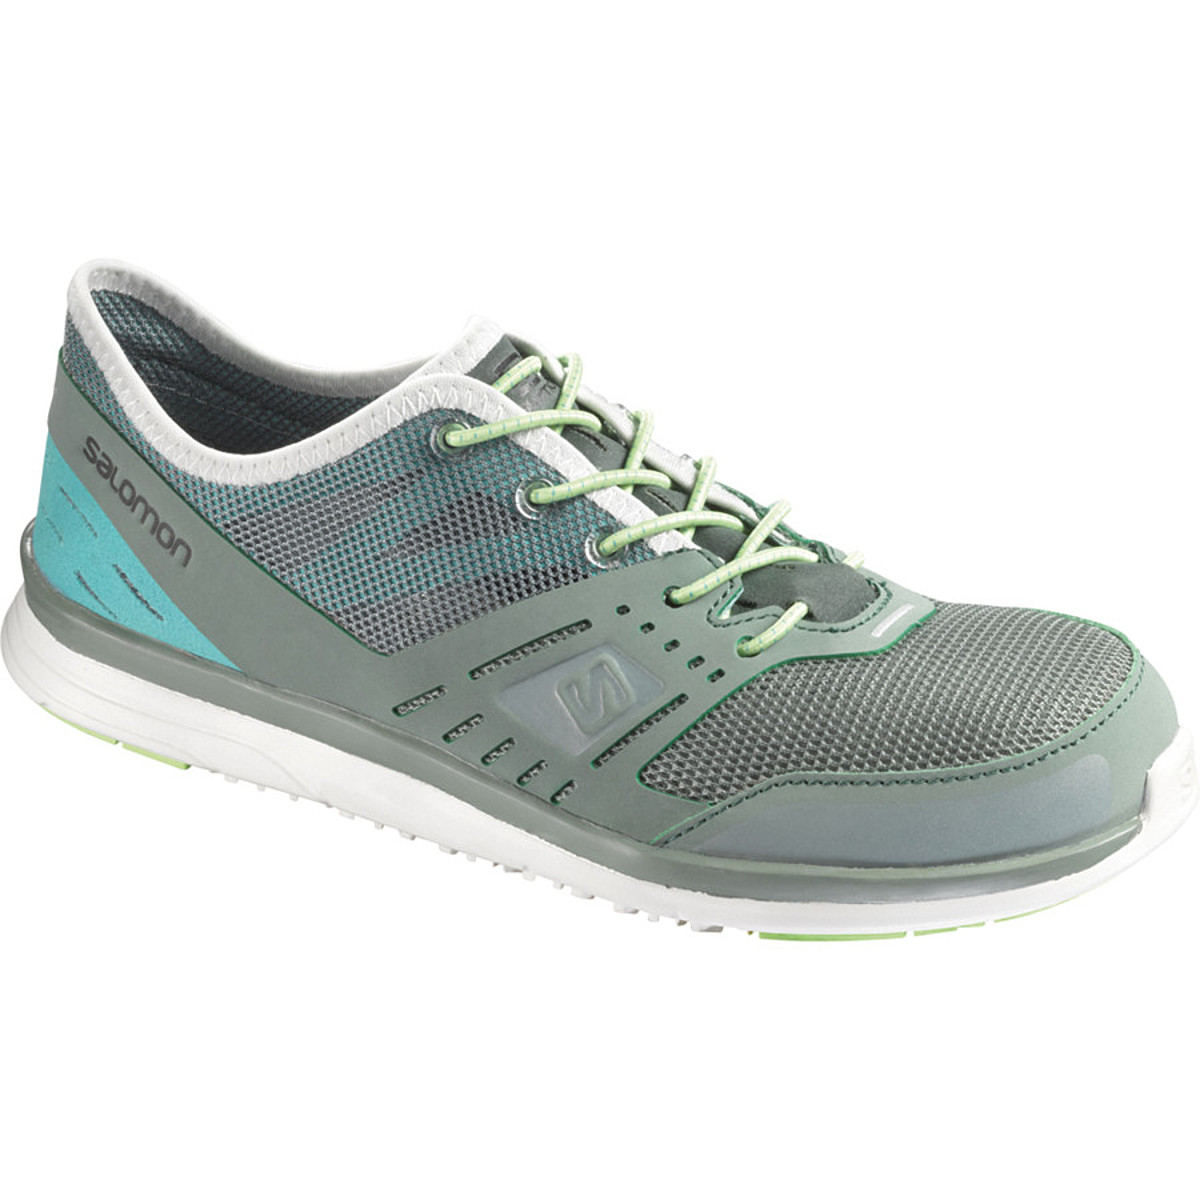 Salomon Cove Shoe